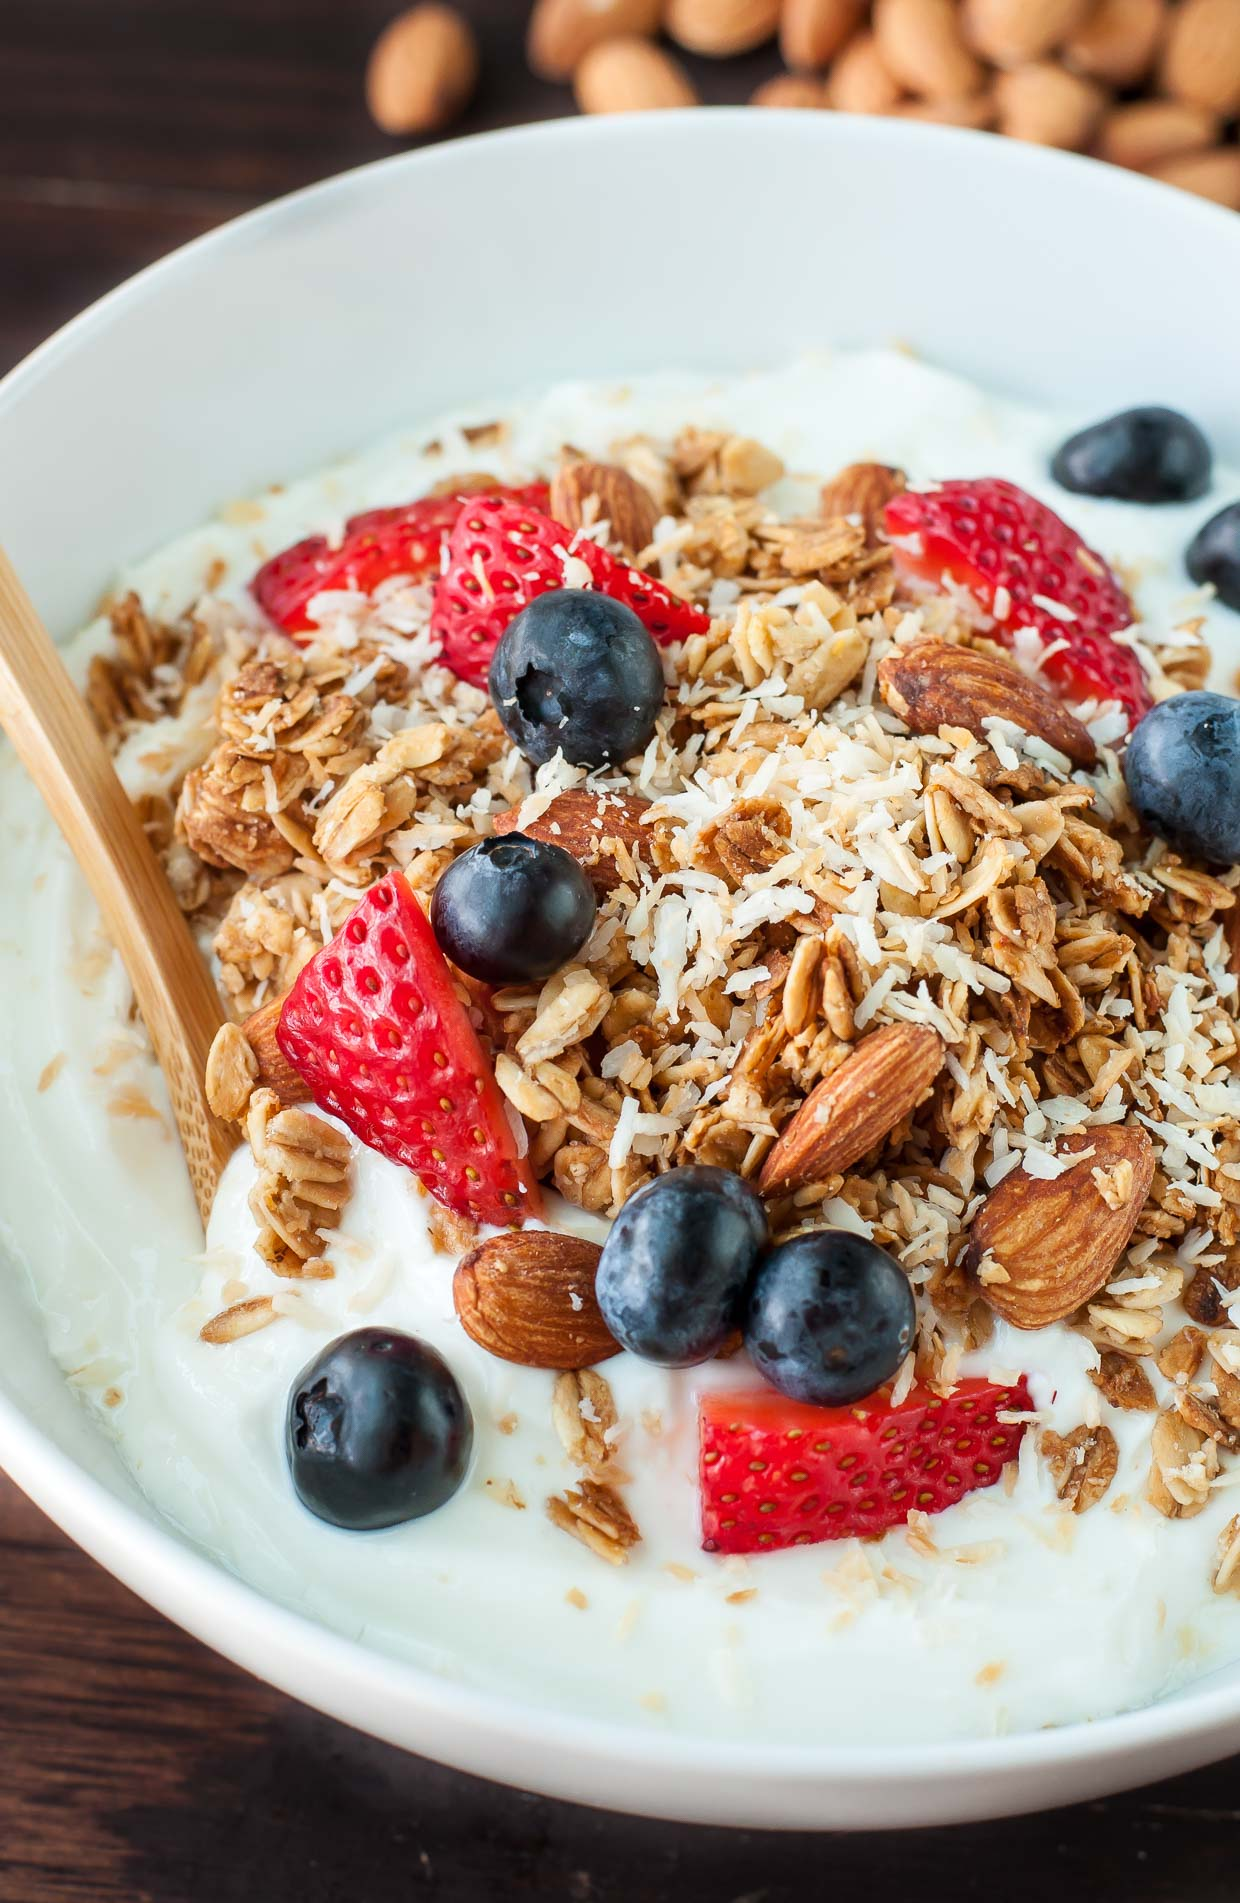 Say hello to my go-to quick and easy breakfast! I'm head over heels for this HEALTHY homemade maple almond granola!